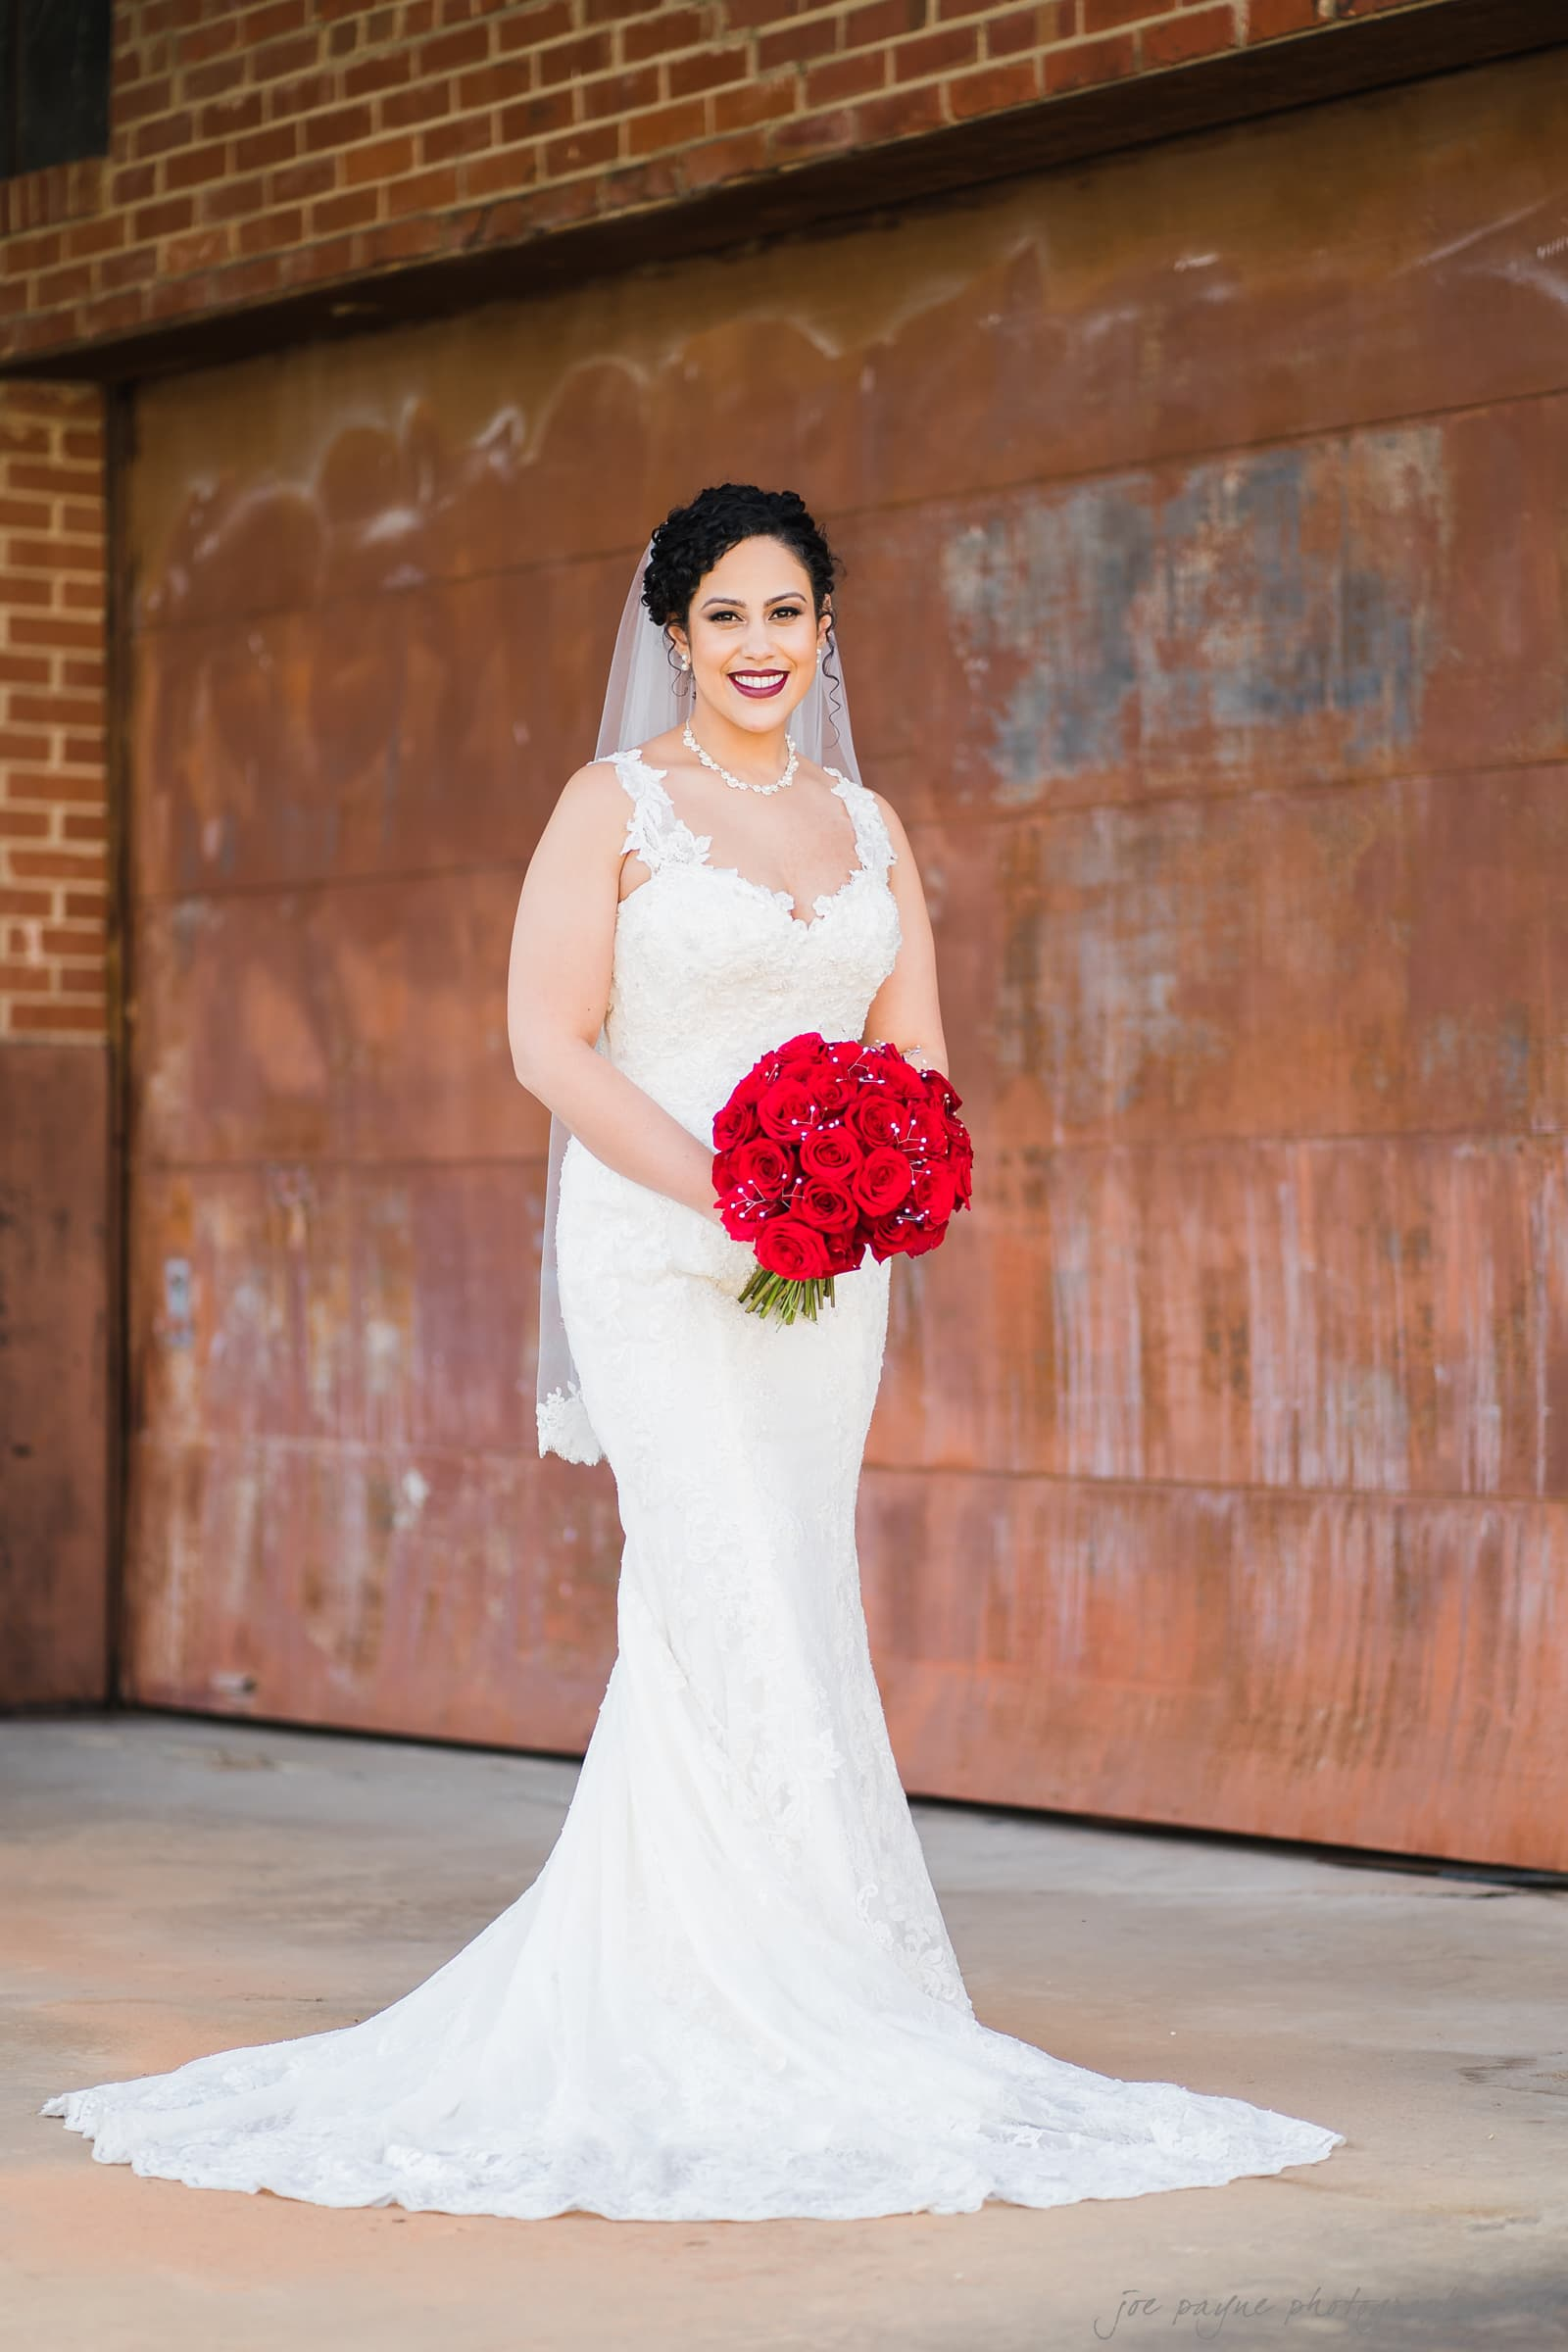 melrose knitting mill raleigh wedding photographer melanie anthony 37